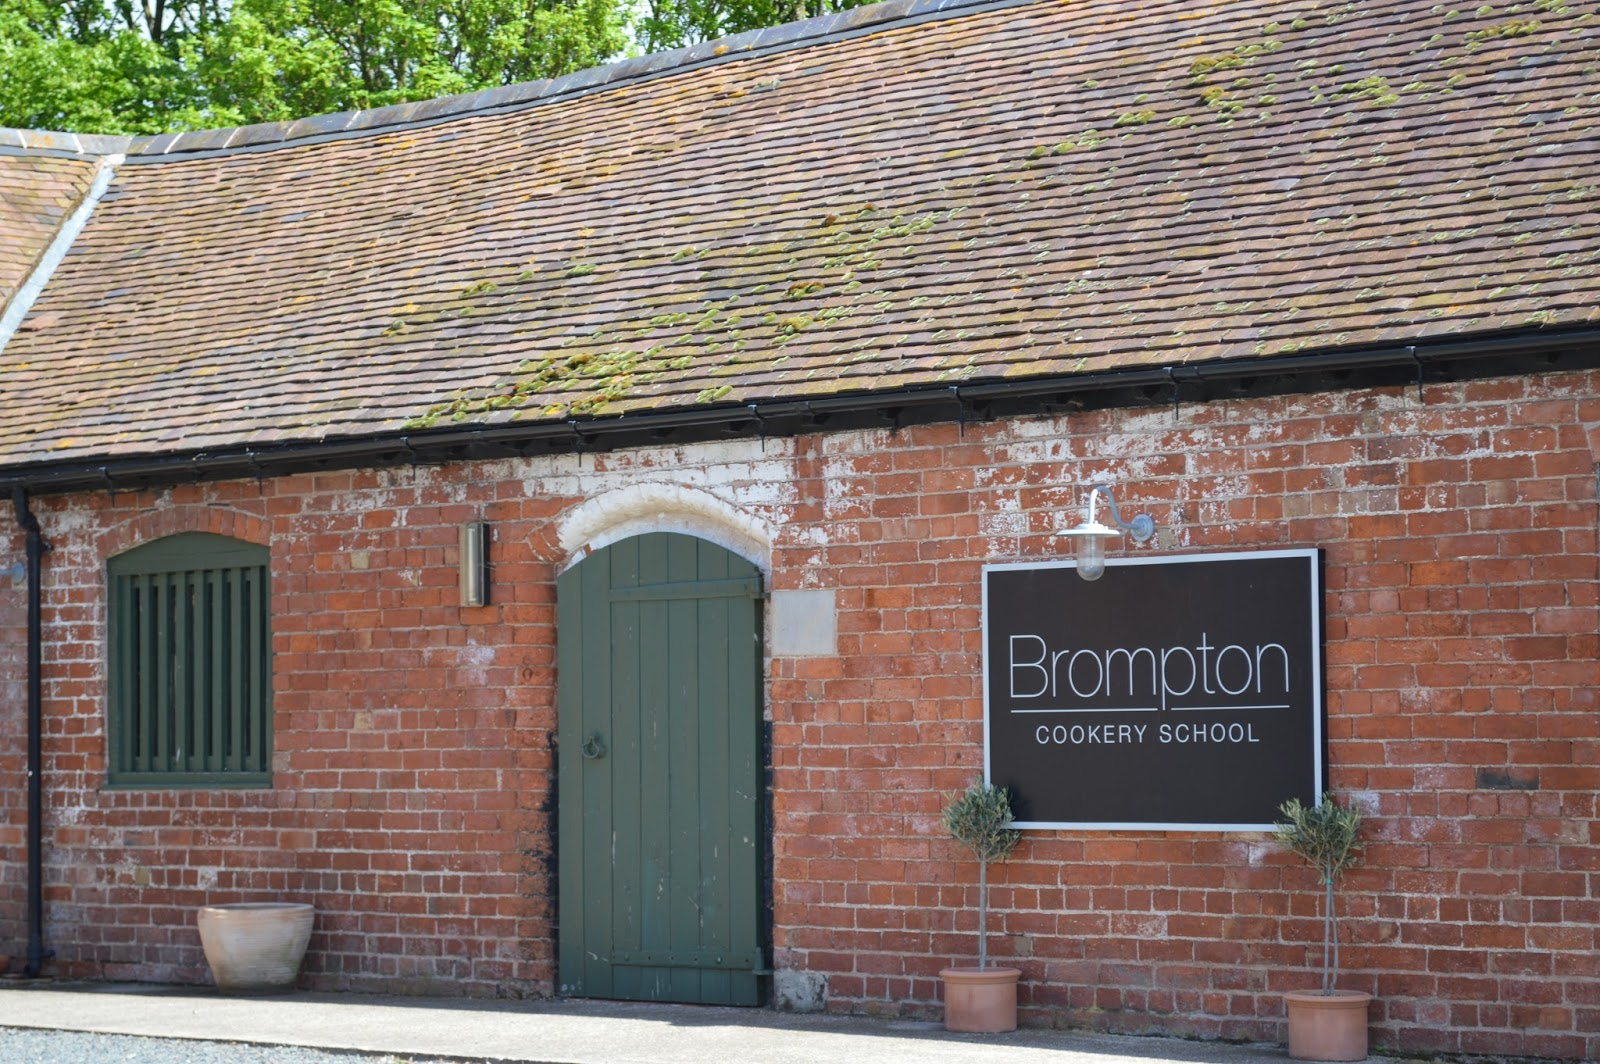 Brompton Cookery School